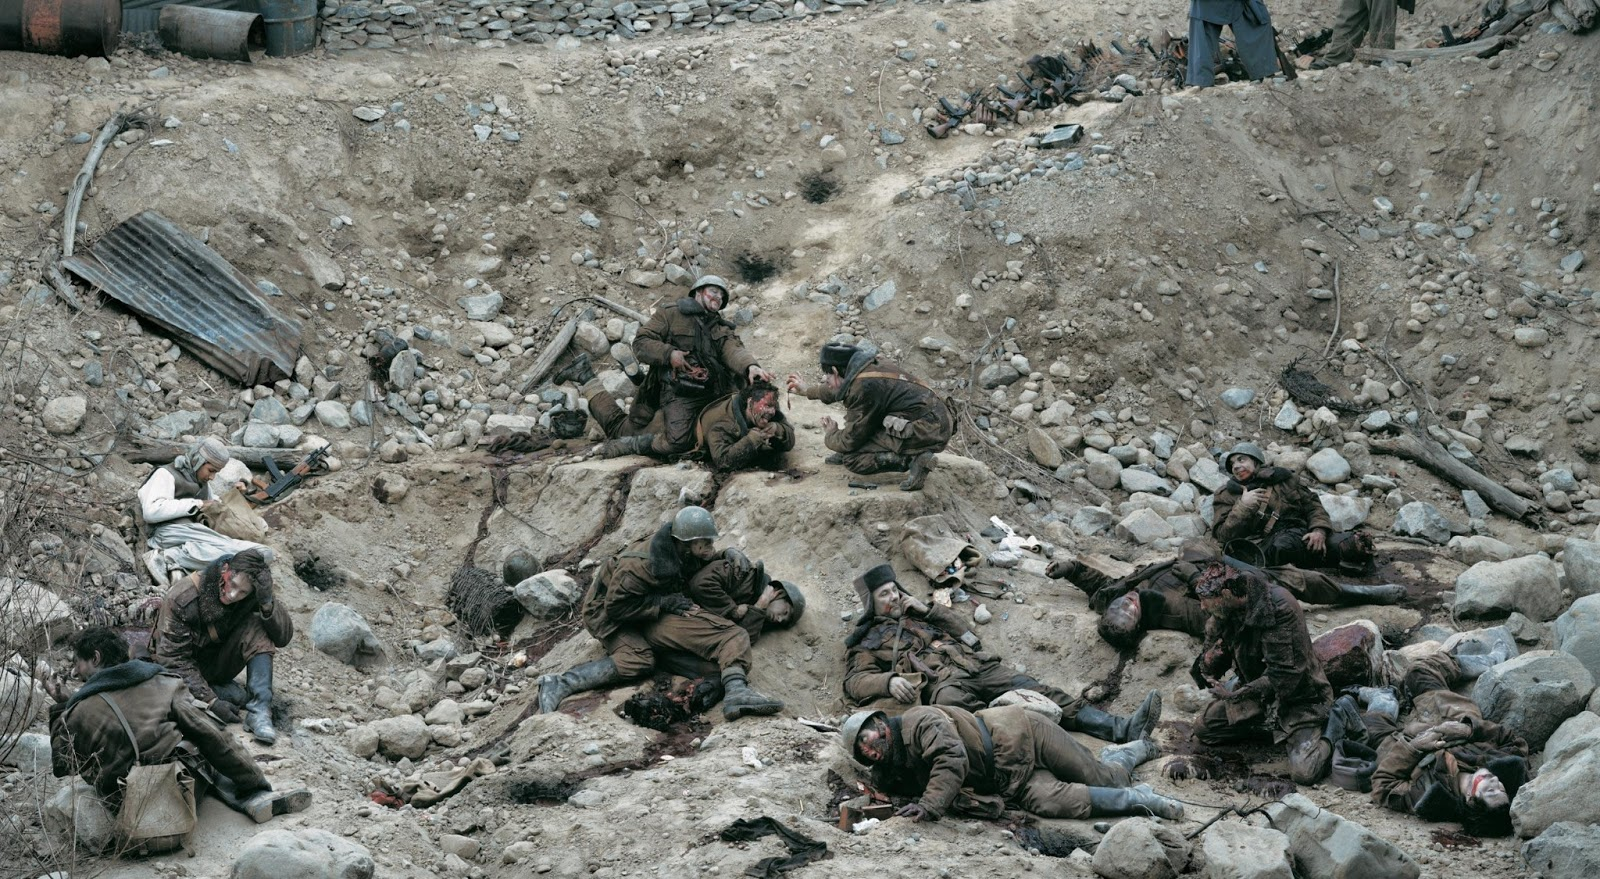 most-expensive-photo-jeff-wall-dead-troops-talk-3